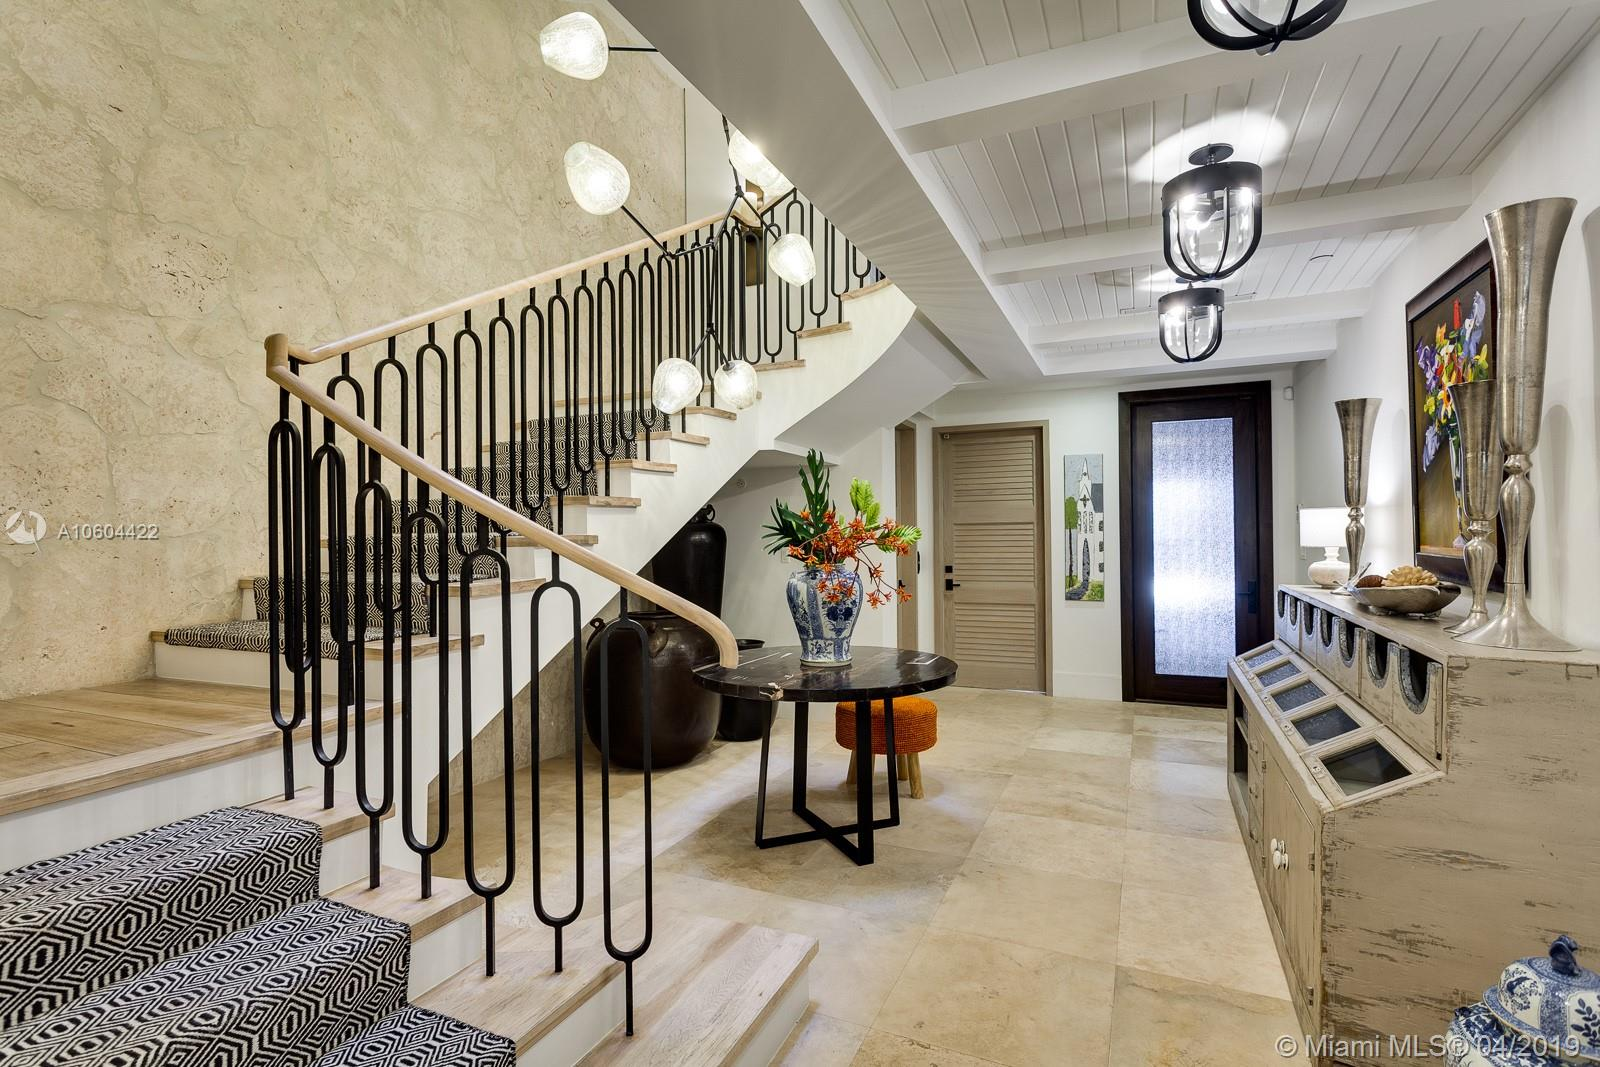 Searching for the 'stand out' home in Coconut Grove? This magnificent Villa at private Cloisters on the Bay checks all of the boxes. Re-designed & renovated by Taylor & Taylor in 2018, every inch exudes beauty & warmth. Dynamic main level seamlessly blends elegant dining & living spaces, dreamy office, full bar, & over-the-top MiaCucina eat-in kitchen. An enclave of 3rd floor bedrms, all ensuite, are designed to metropolitan perfection. An amazing roof-top oasis & summer kitchen are a fabulous backdrop for entertaining & star gazing, and for guests, a completely private suite features bedrm, bath, kitchenette, & living area - 5-star accommodations! The details & appointments are endless – remarkable surfaces, dual-sided fireplace, elevator, & 7 parking spaces to name a few. Flood Zone 'X'.